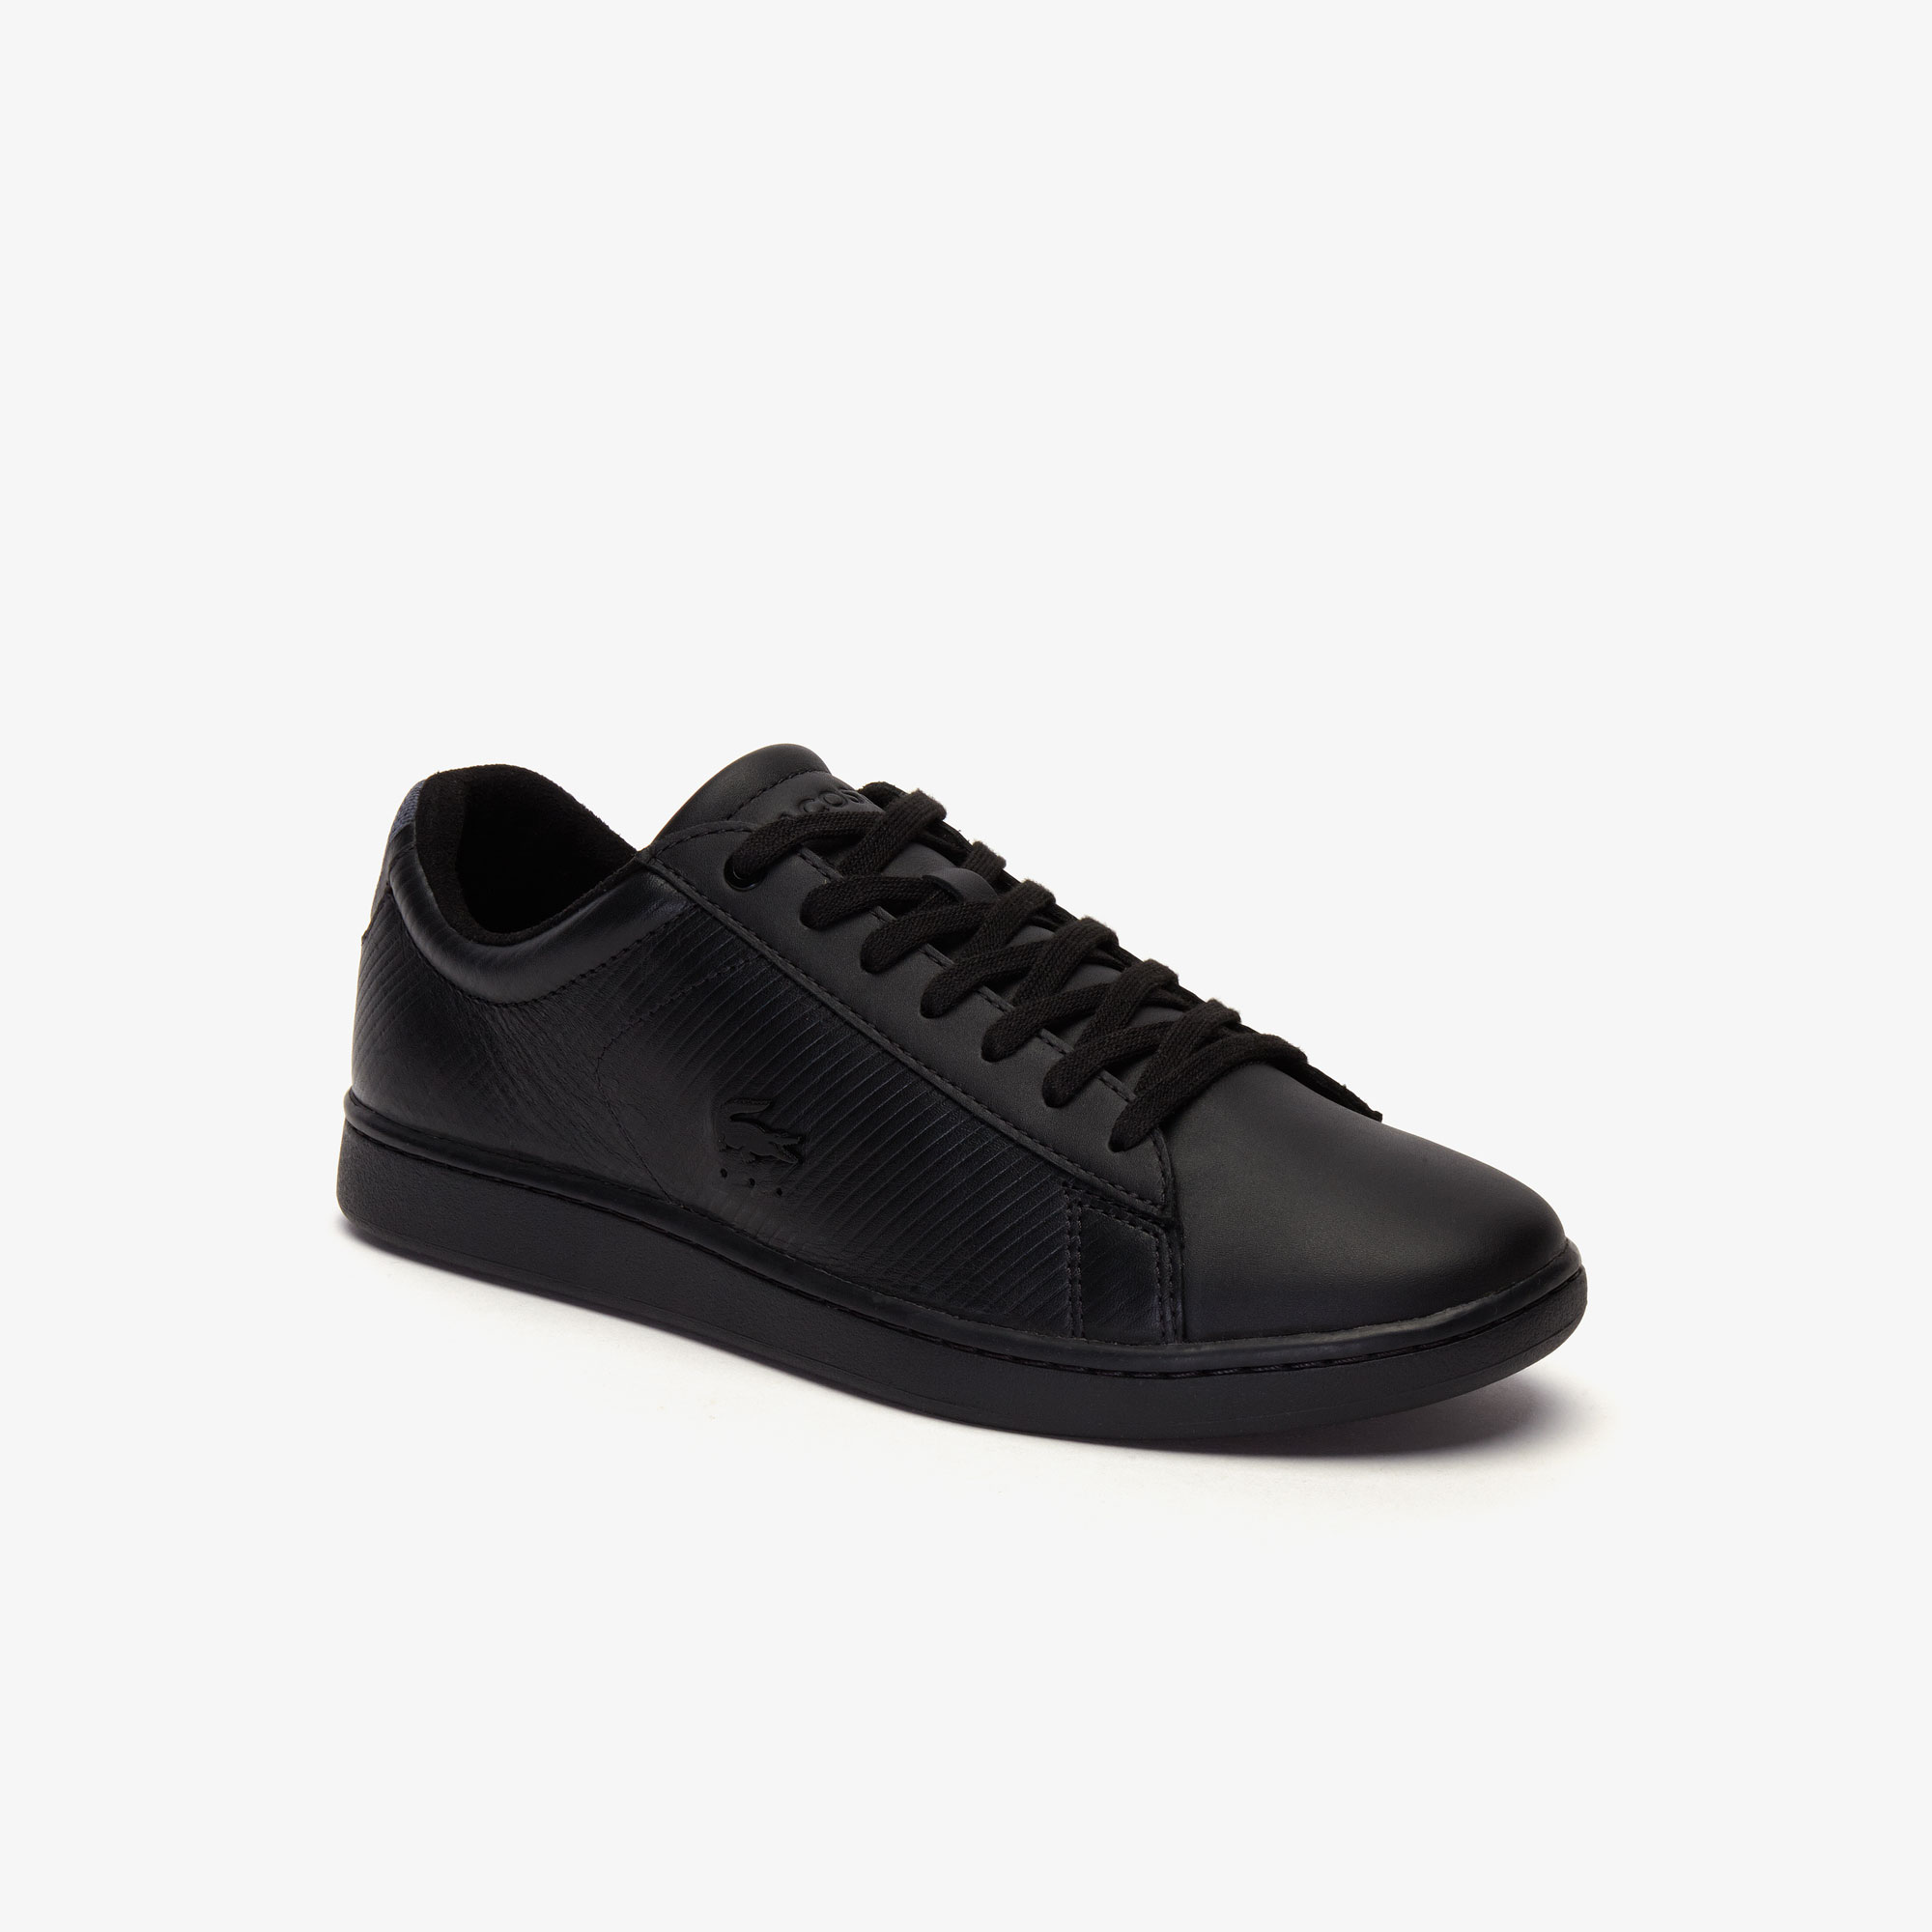 5d64545395b1 Chaussures homme | Collection Homme | LACOSTE